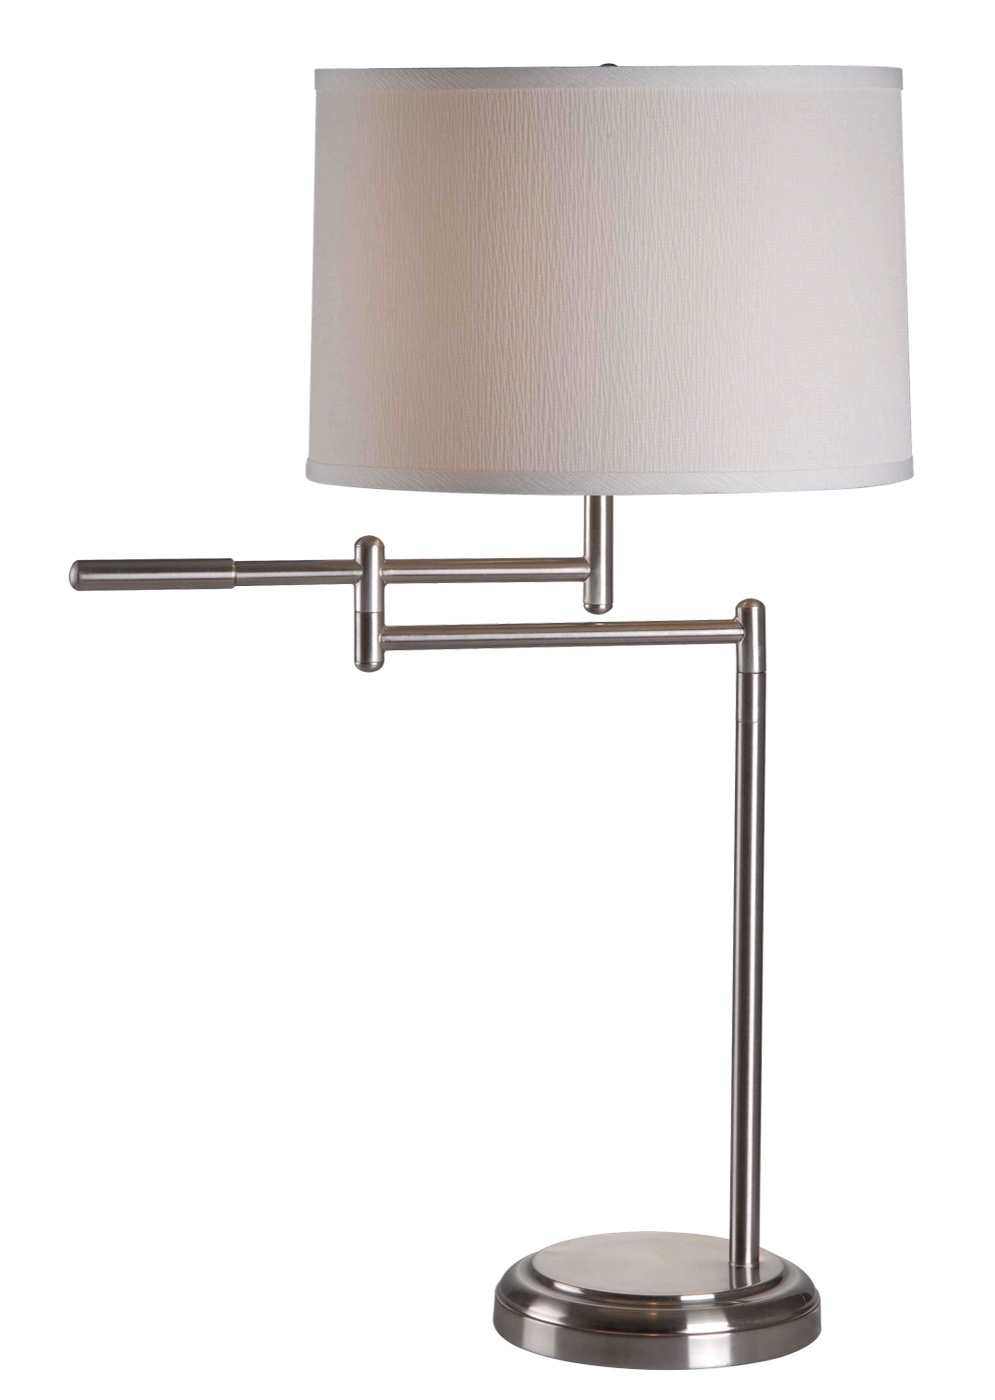 Theta swing arm brushed steel drum shade table lamp for Swing arm floor lamp with drum shade